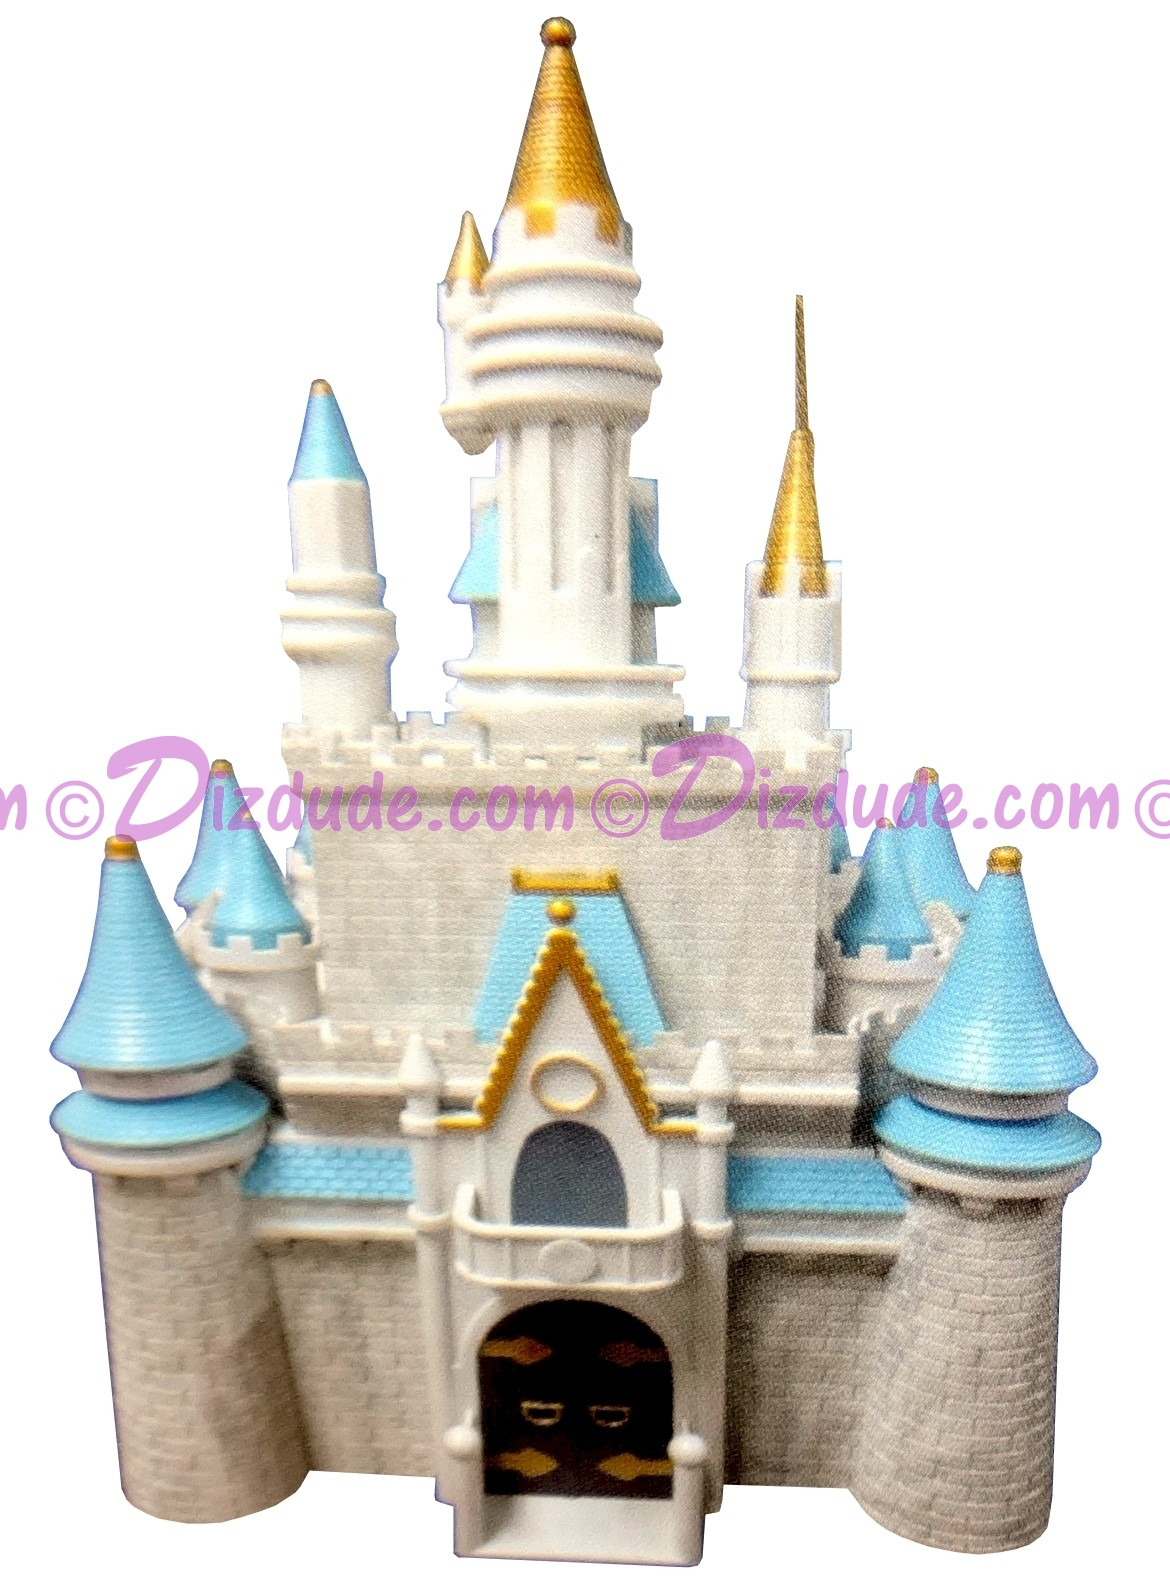 Disney Magic Kingdom Cinderella Castle PlaySet ~ Monorail Accessory © Dizdude.com